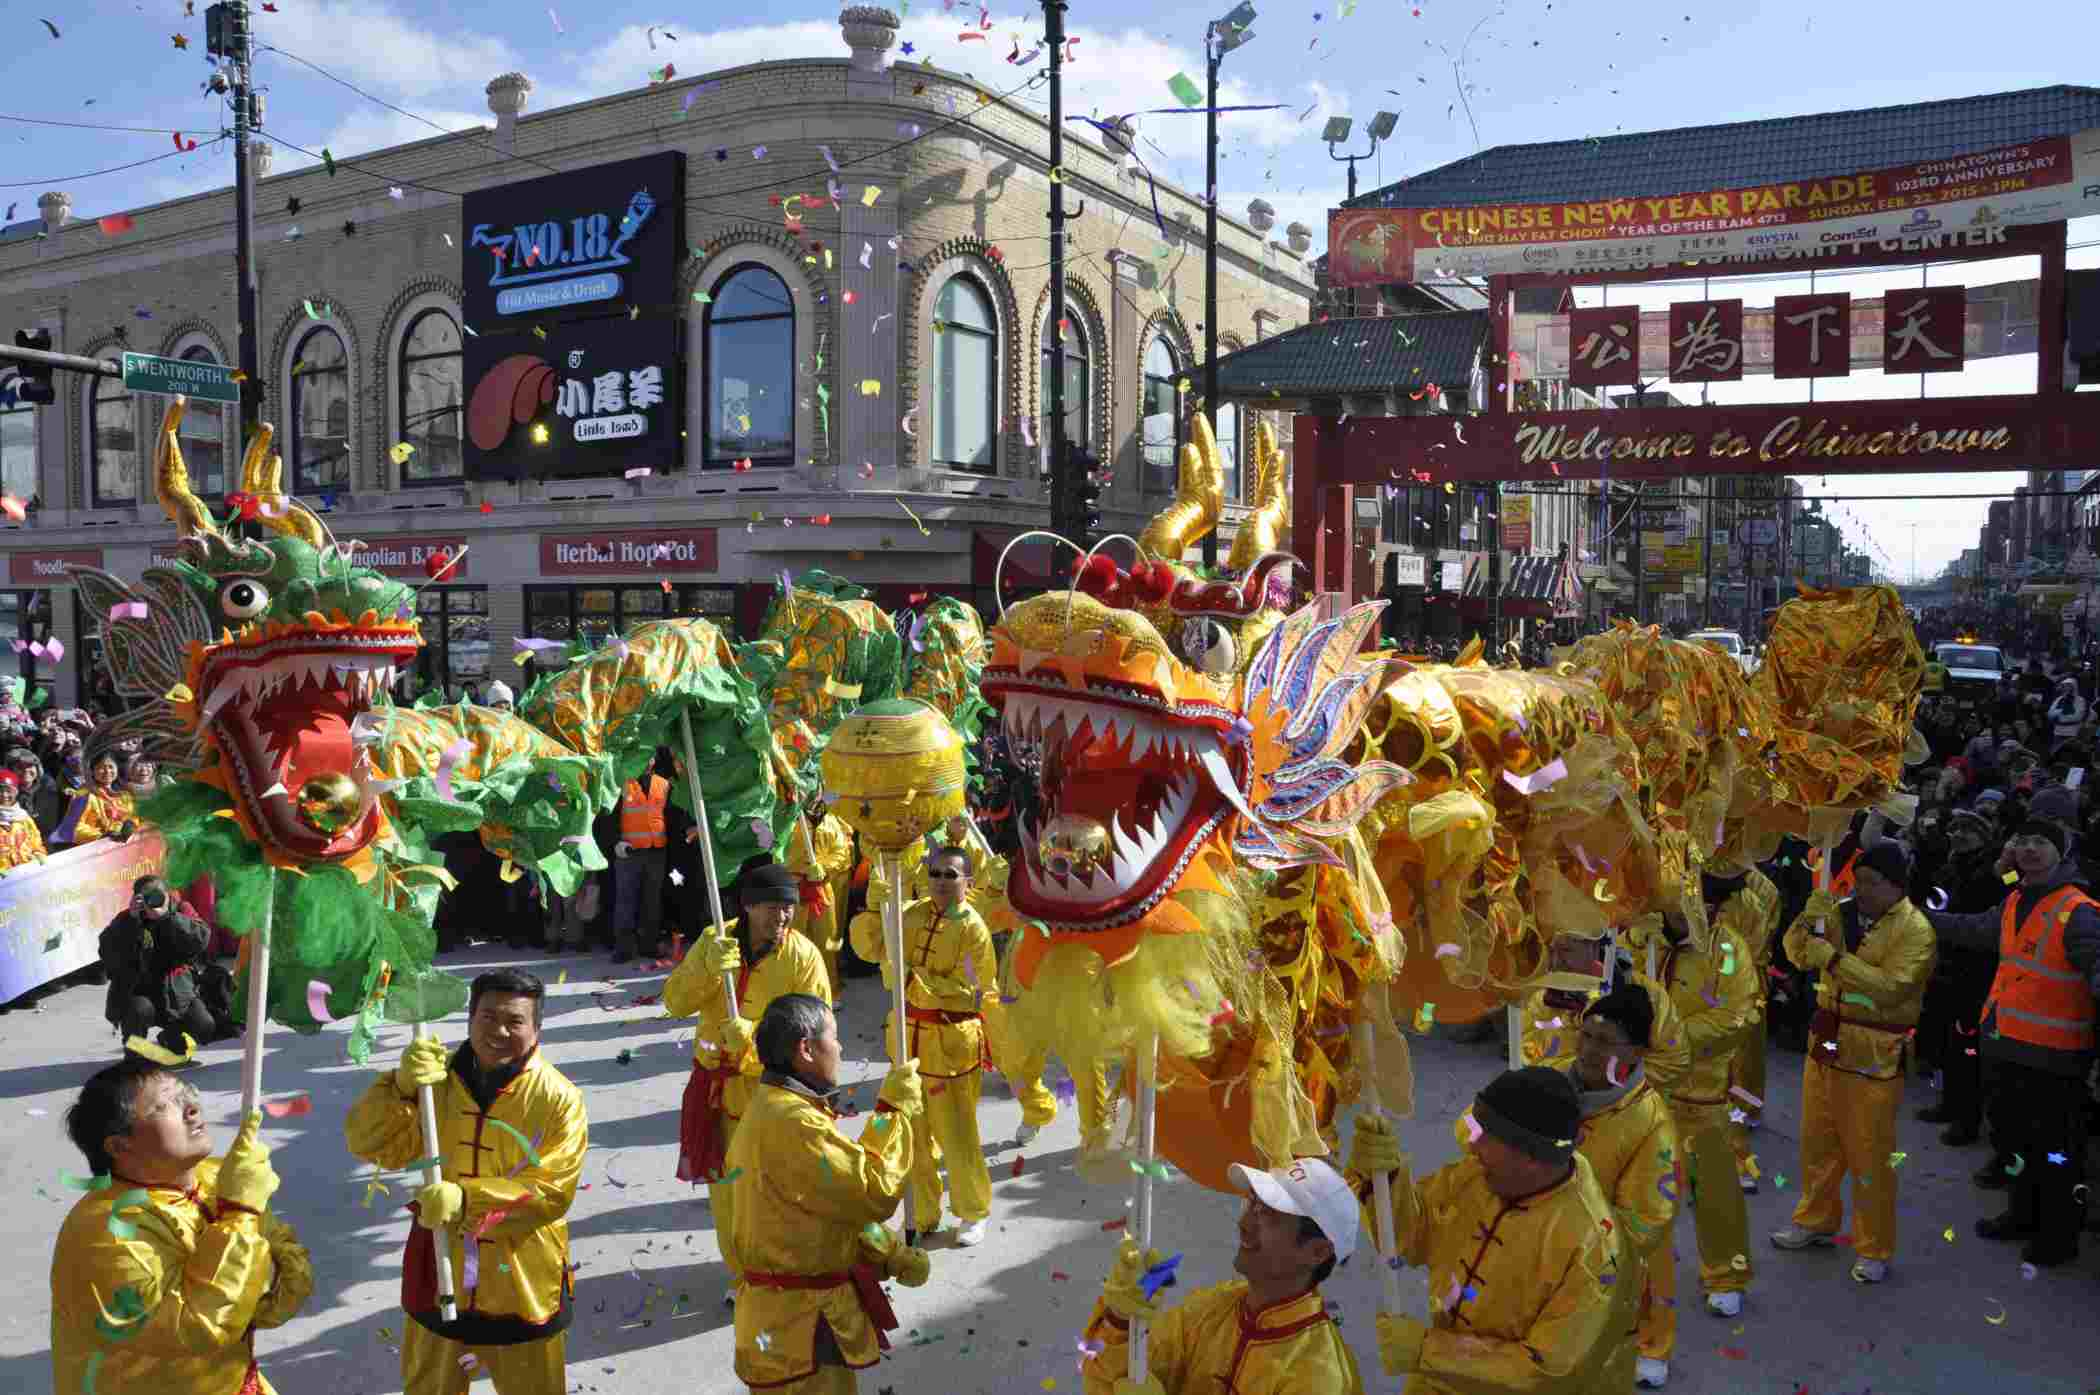 Chicago Lunar New Year Parade